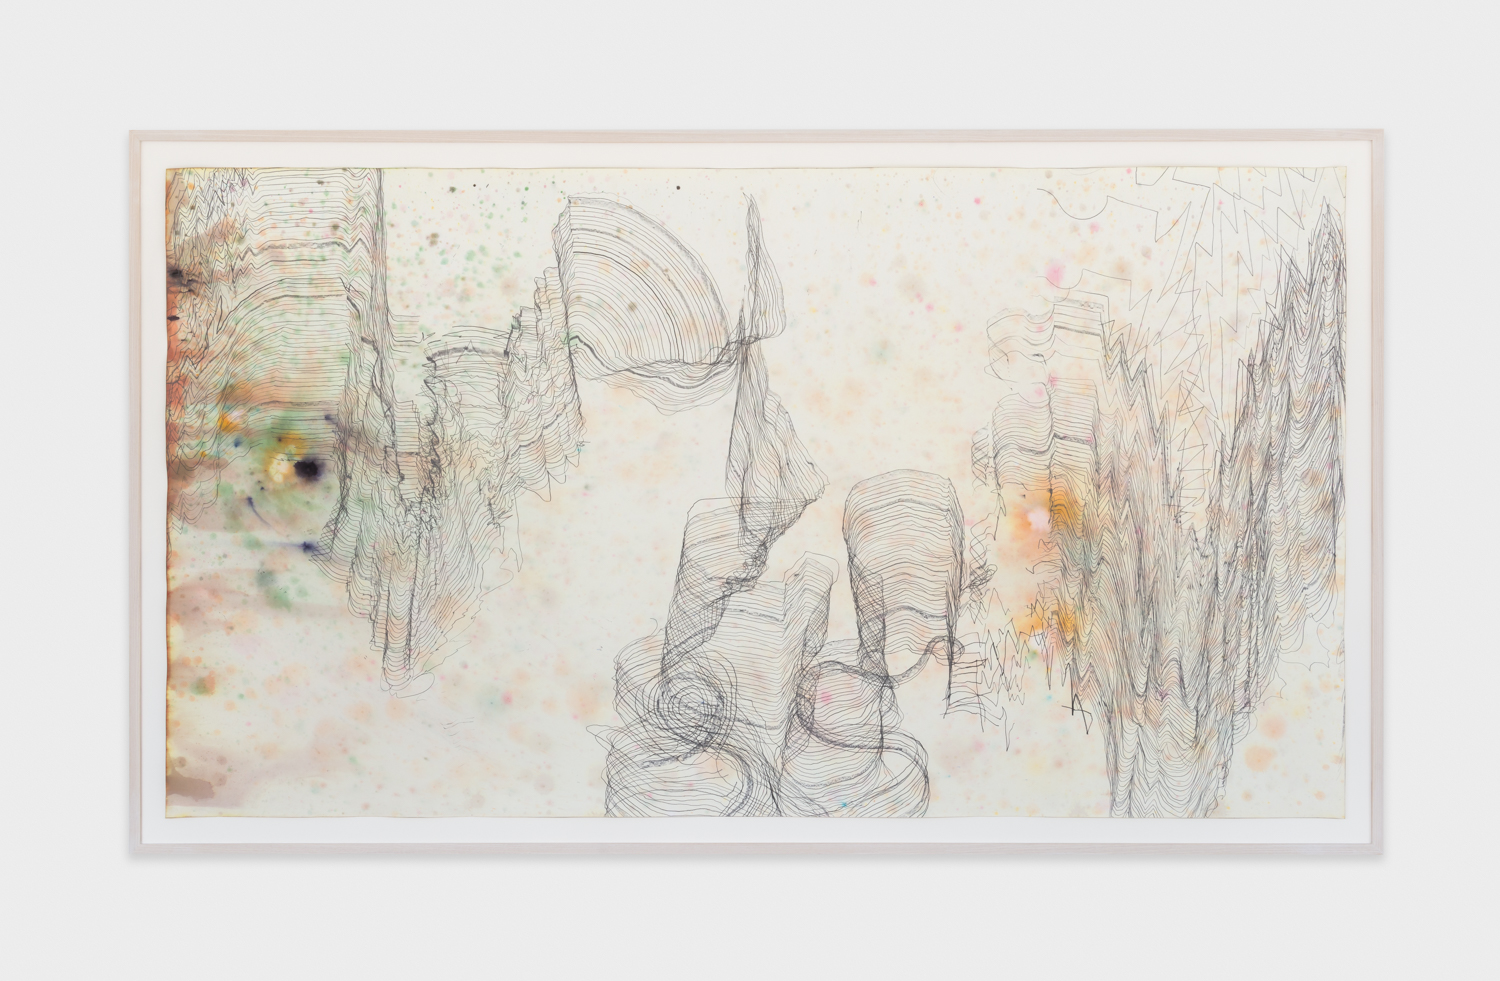 Jay Heikes  Music for Minor Planets (Nureyev)  2015 Pencil and dye on paper 44h x 80w in JH044